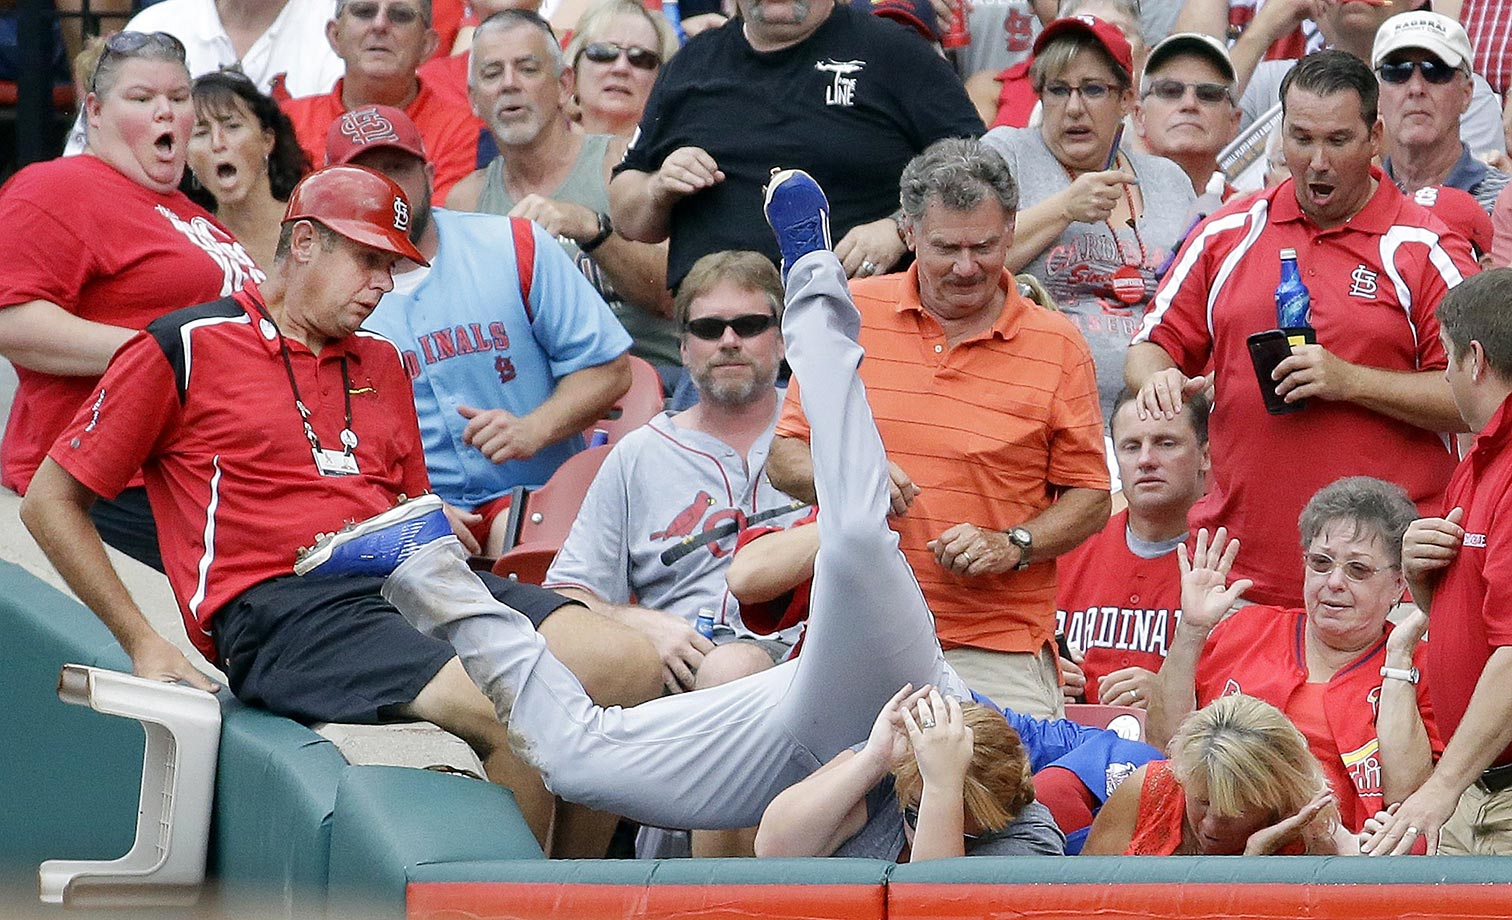 Chris Coghlan of the Chicago Cubs dives into the crowd to catch a foul ball hit by Tommy Pham of the St. Louis Cardinals.